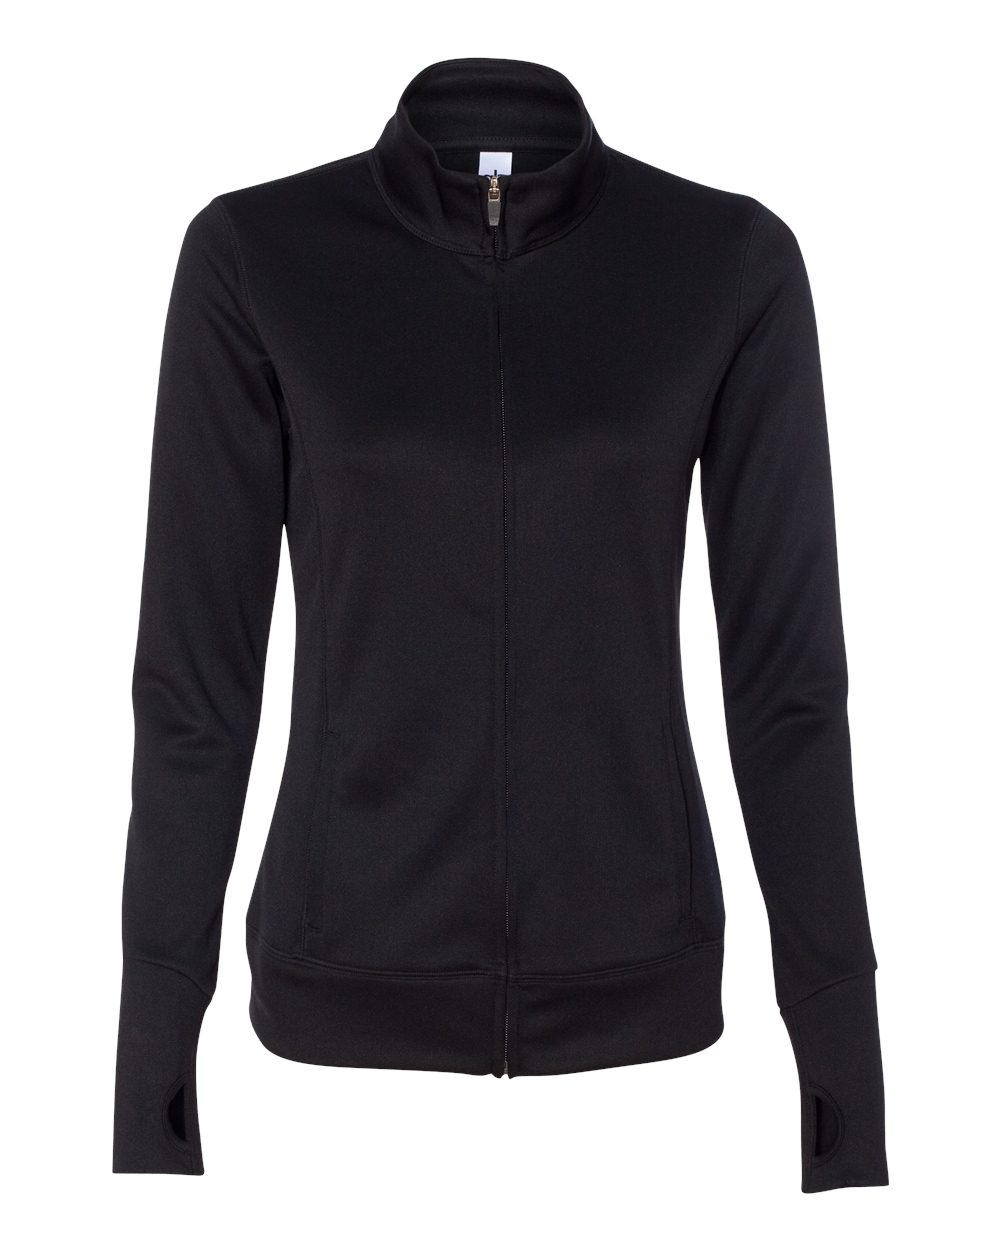 Alo sport ladies 39 lightweight jacket for Custom t shirts manchester ct